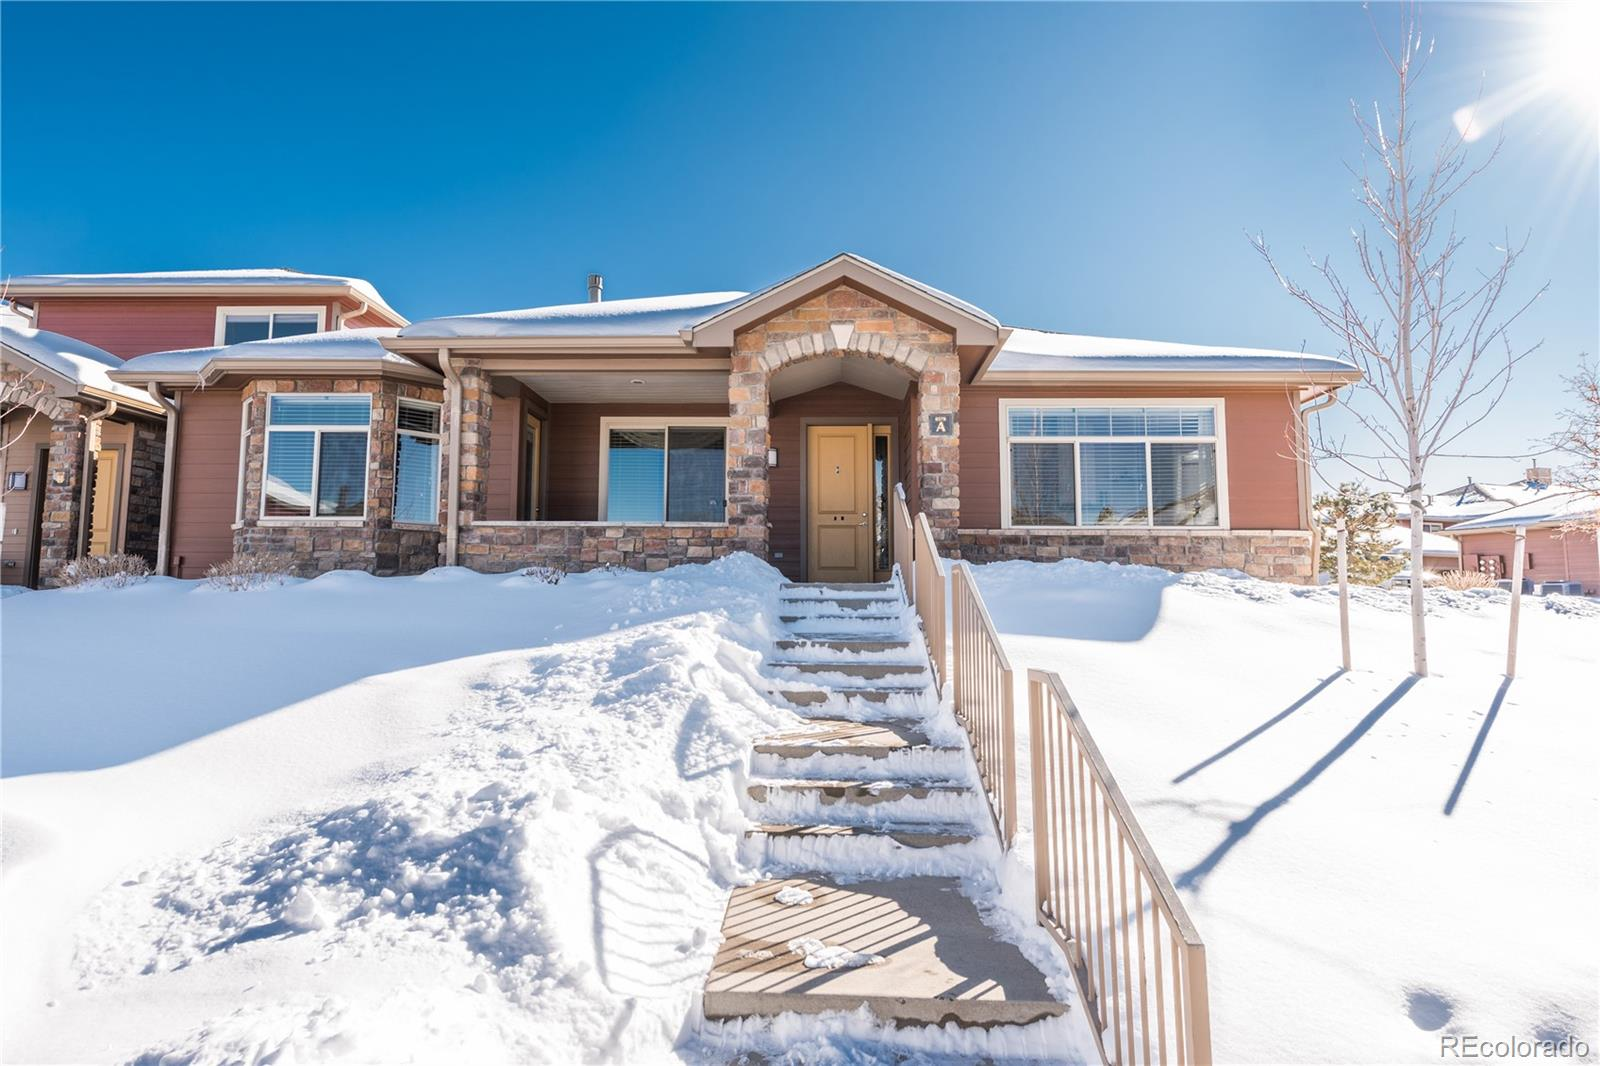 MLS# 2963083 - 2 - 8578 Gold Peak Drive #A, Highlands Ranch, CO 80130